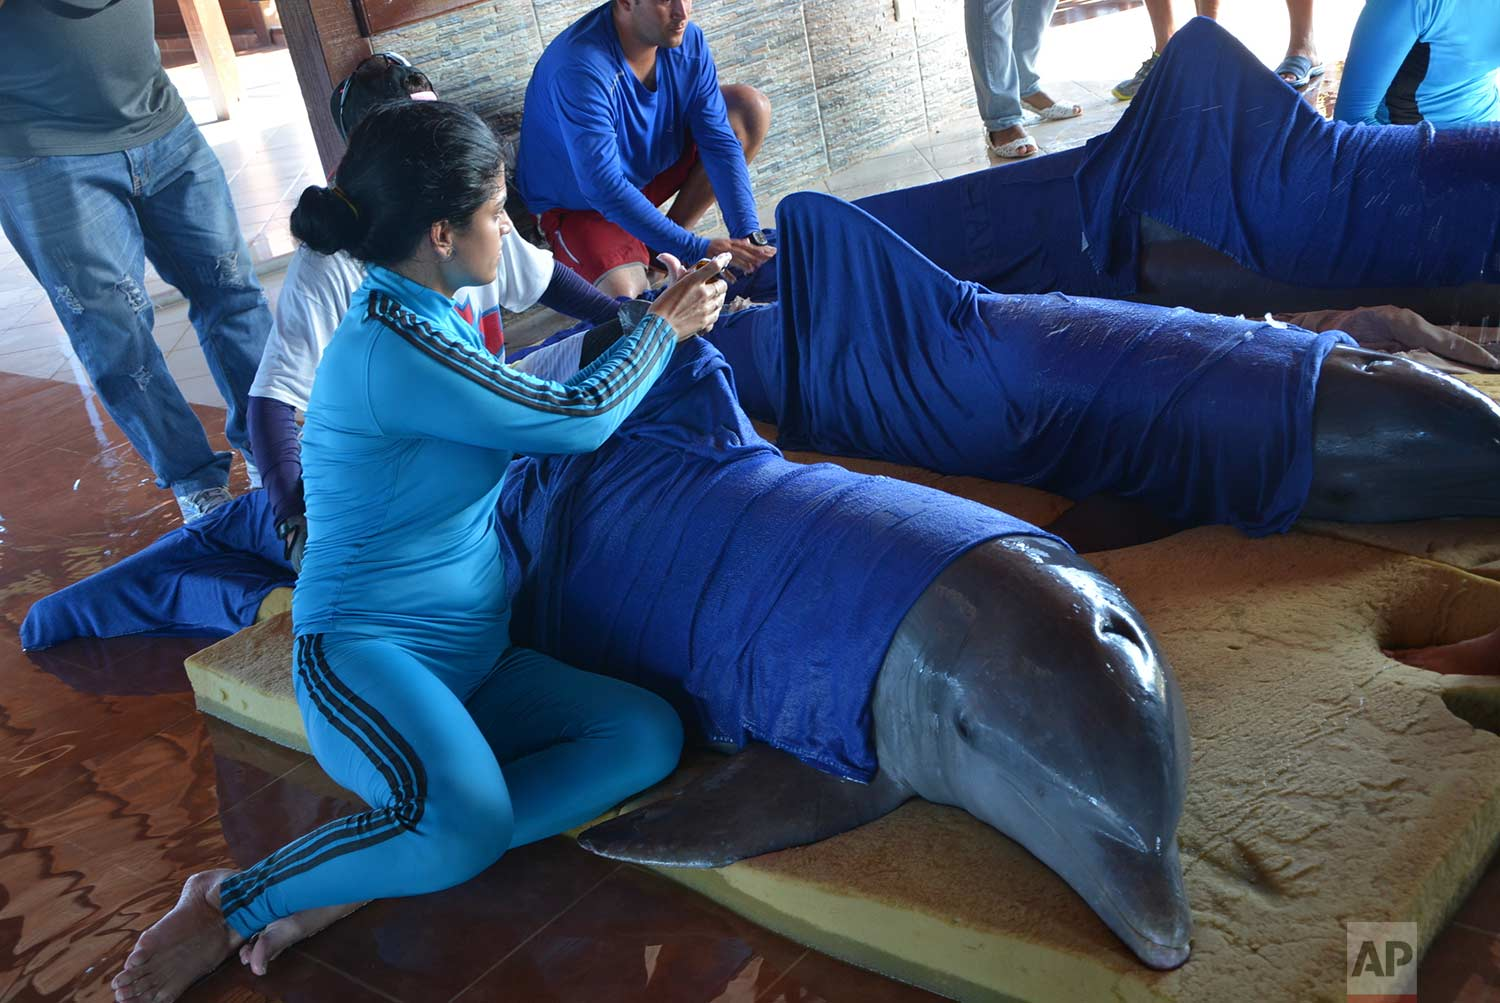 Handlers from the Cayo Guillermo dolphinarium prepare dolphins for their transfer to the dolphinarium in Cienfuegos, located on Cuba's southern coast, just hours before the arrival of Hurricane Irma, Friday, Sept. 8, 2017. (Osvaldo Gutierrez Gomez/ACN via AP)